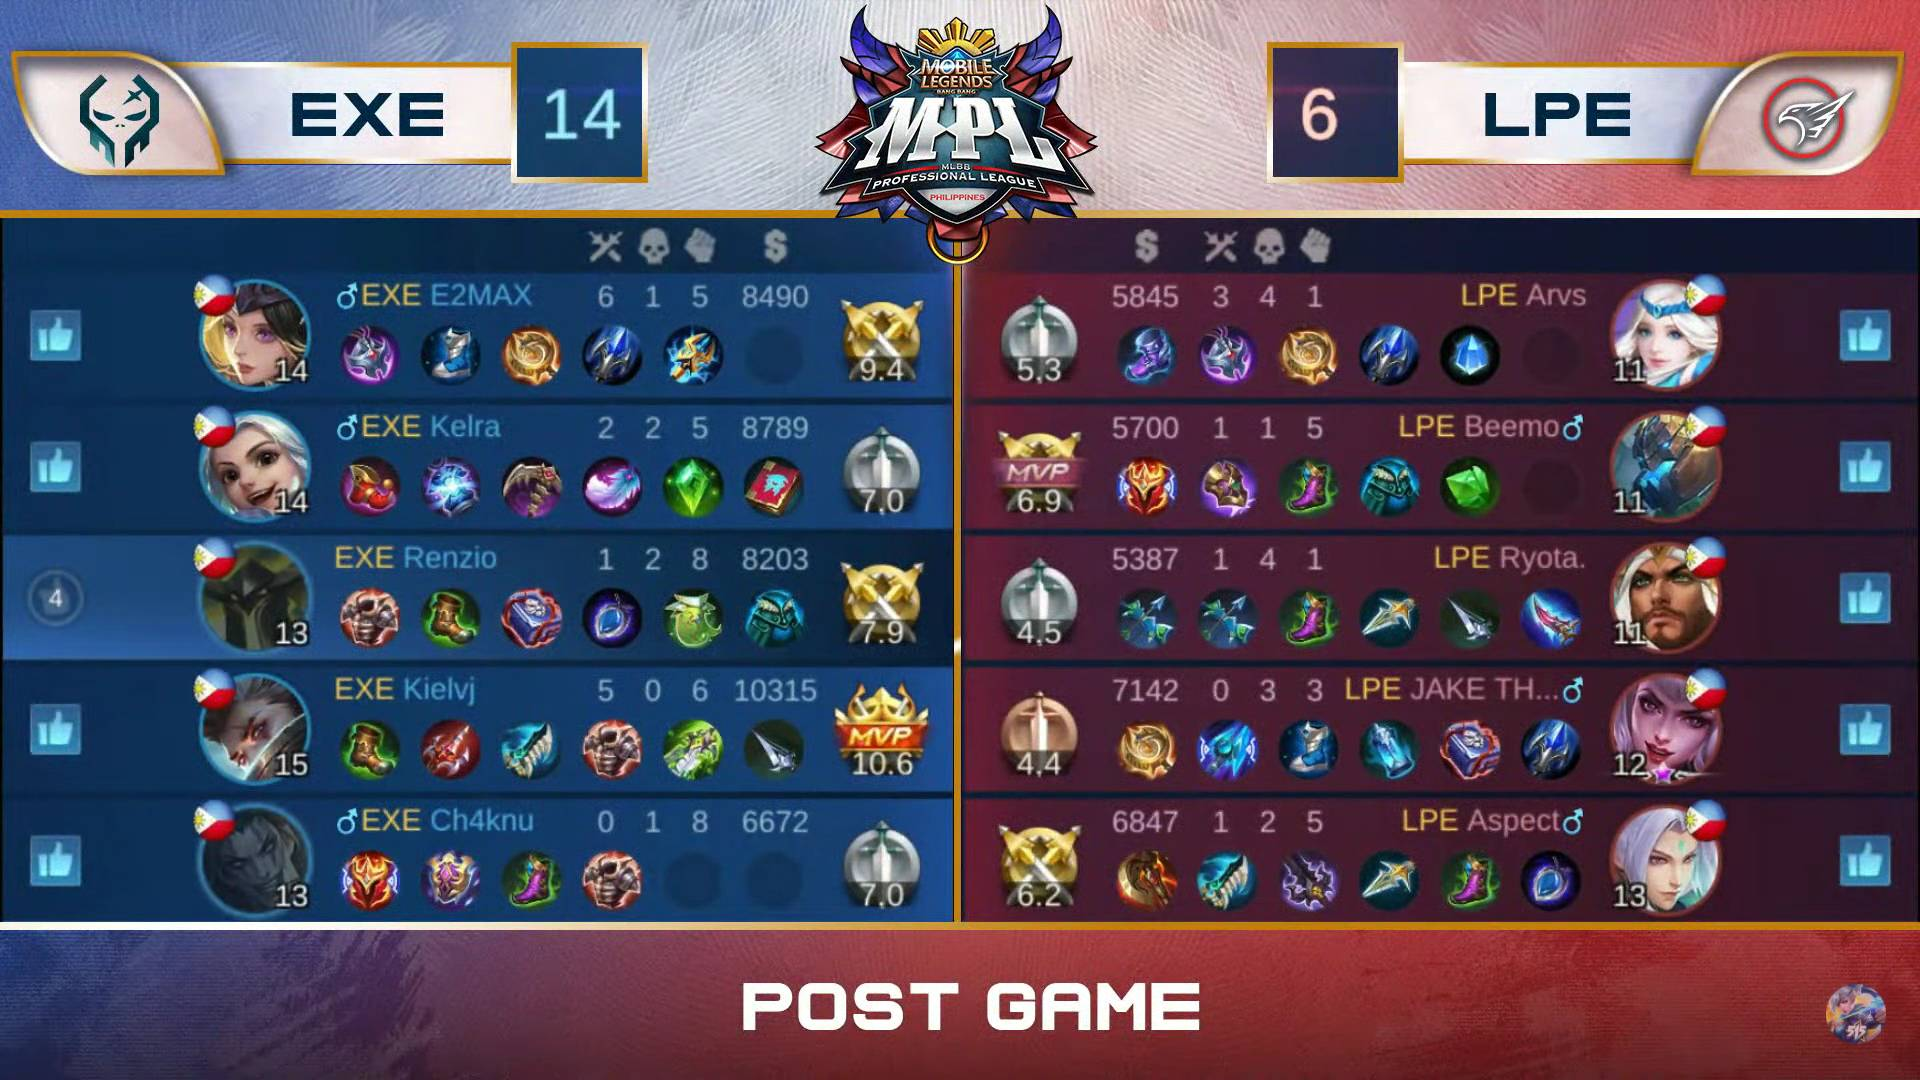 MPL-PH-7-Execration-def-Playbook-Game-2 Kielvj survives early Playbook pressure as Execration rises to top of MPL PH B ESports Mobile Legends MPL-PH News  - philippine sports news